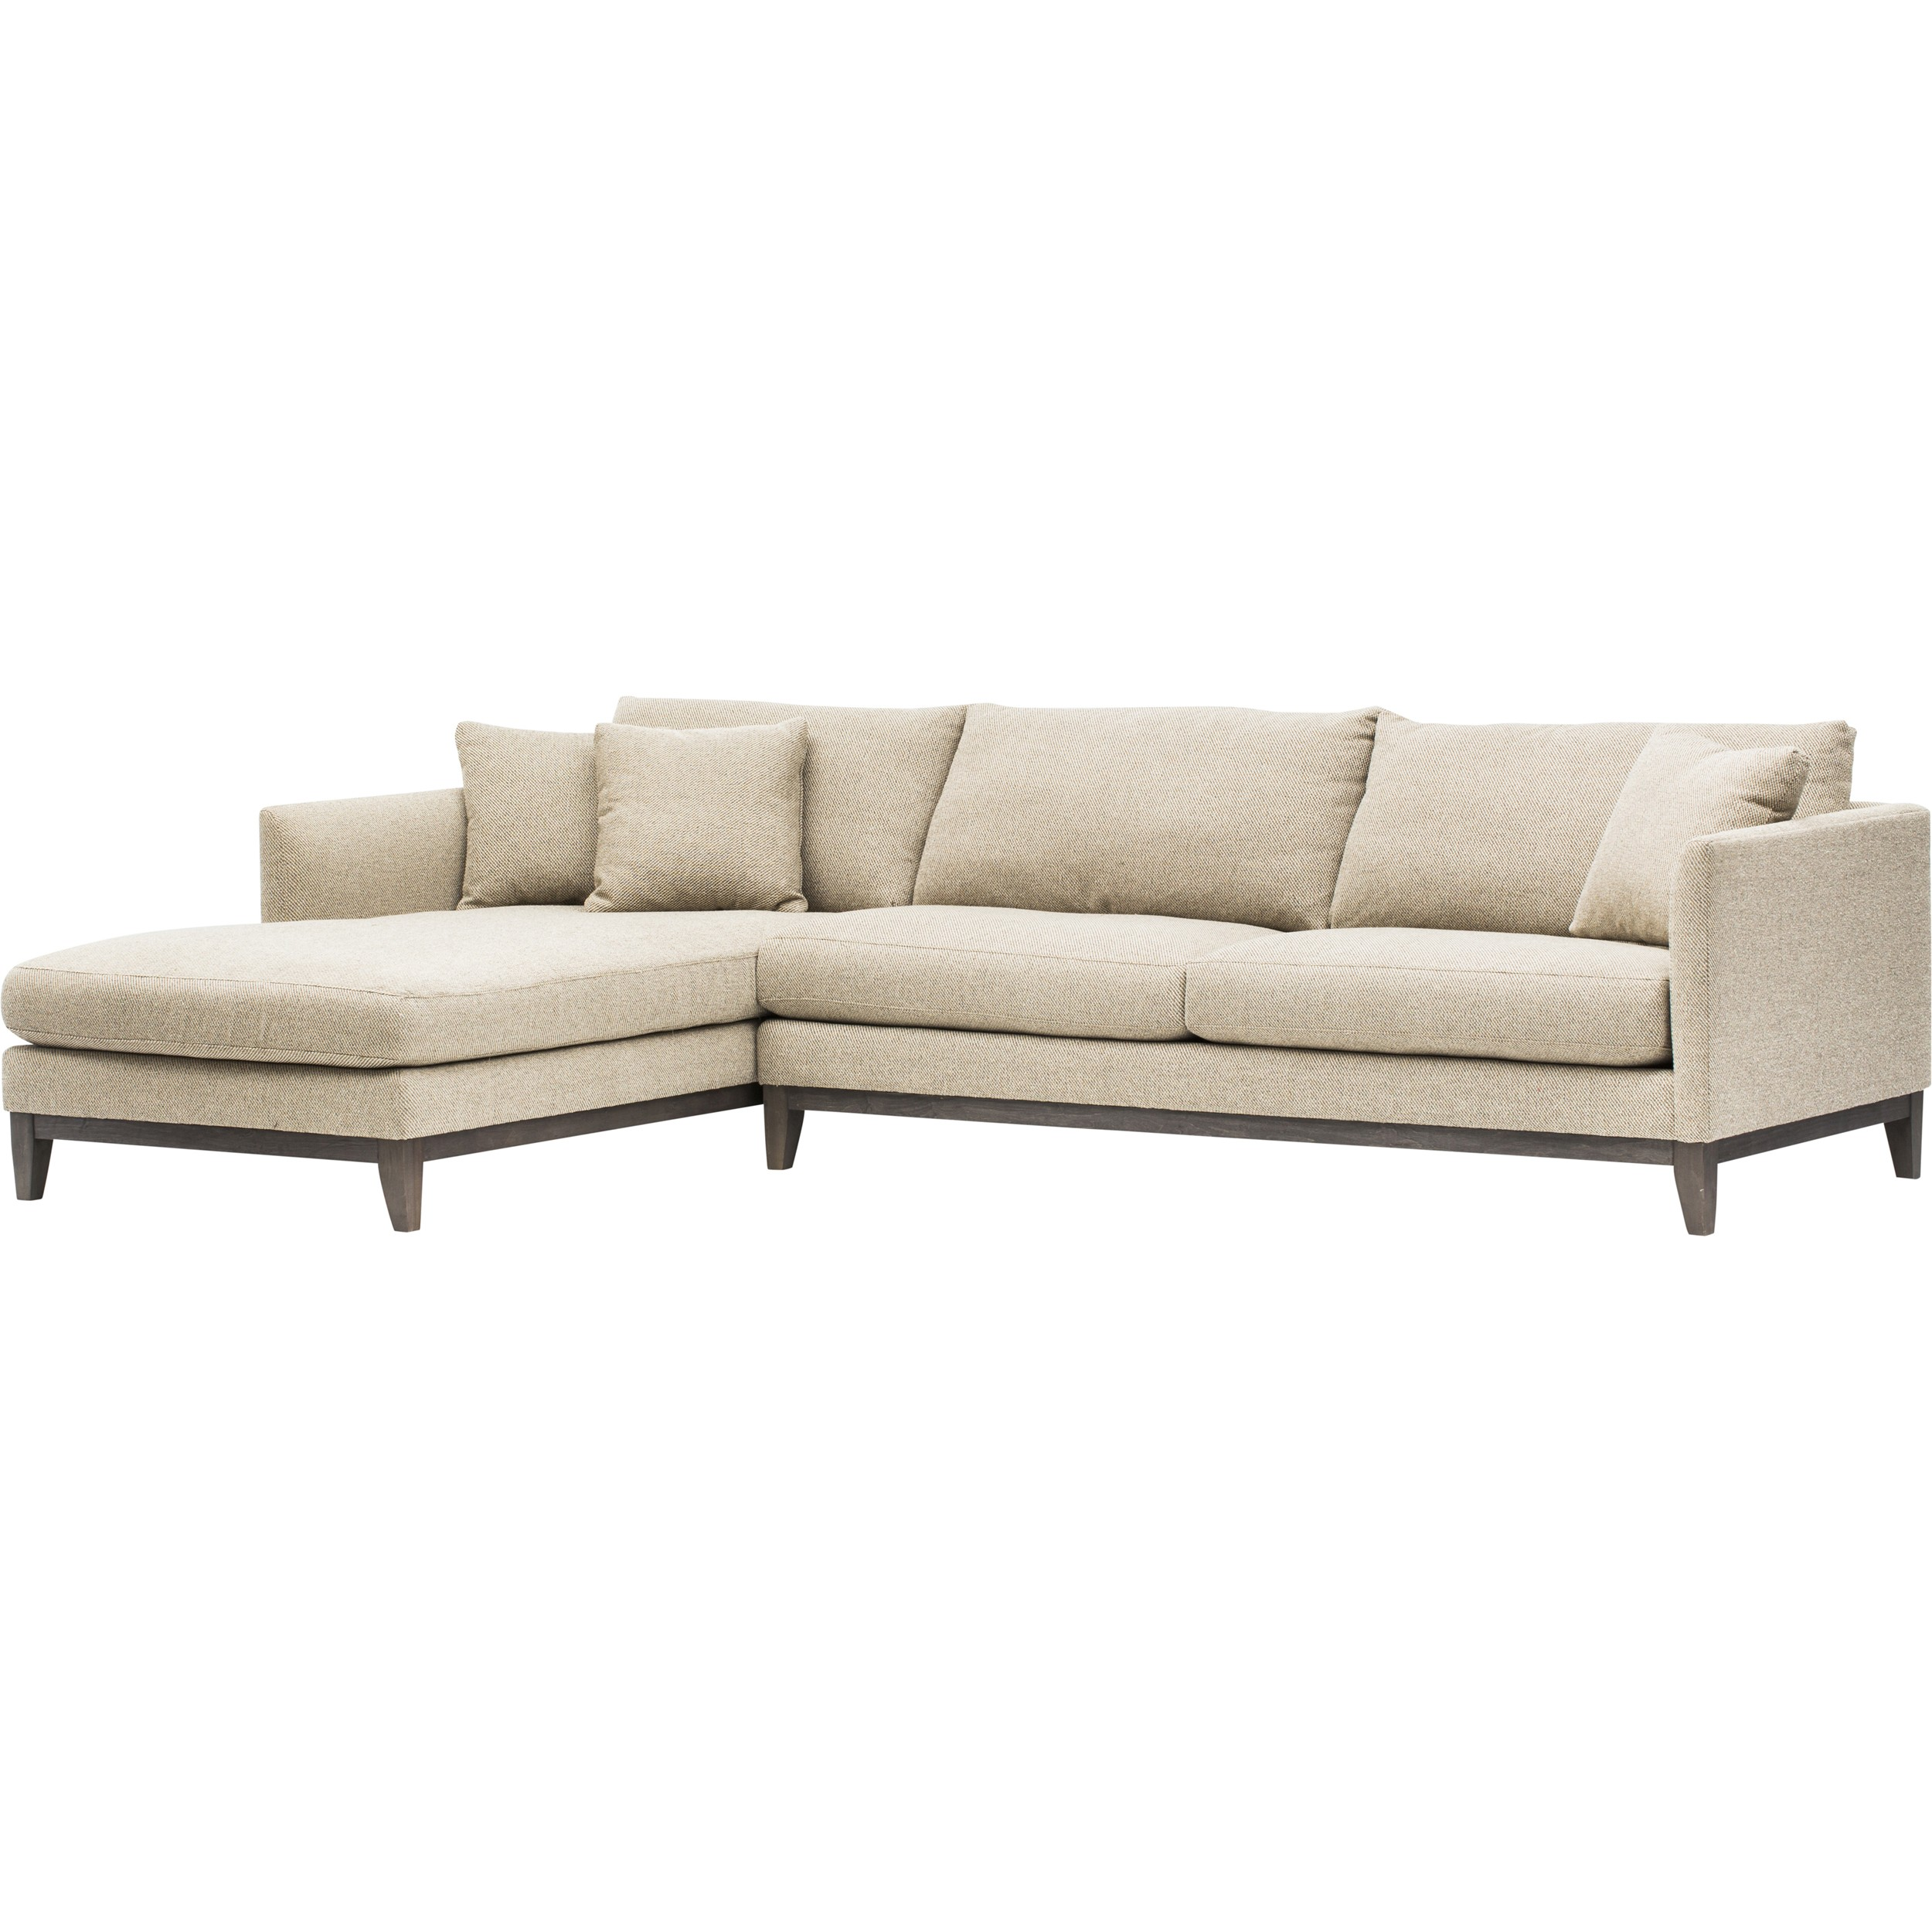 Westin sectional costa rican furniture for Albany saturn sectional sofa chaise